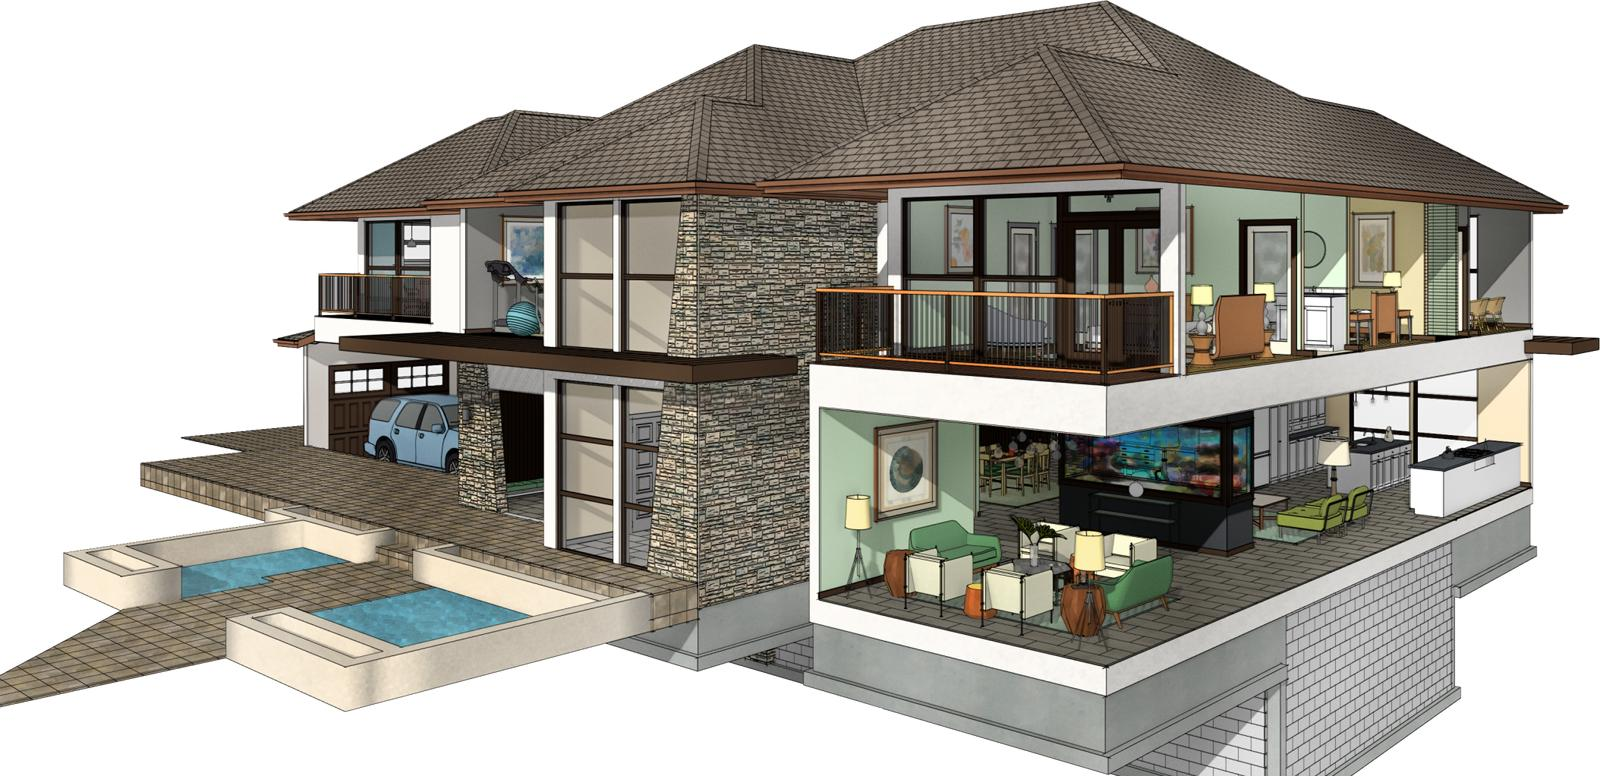 Home designer software for home design remodeling projects for Online 3d building design